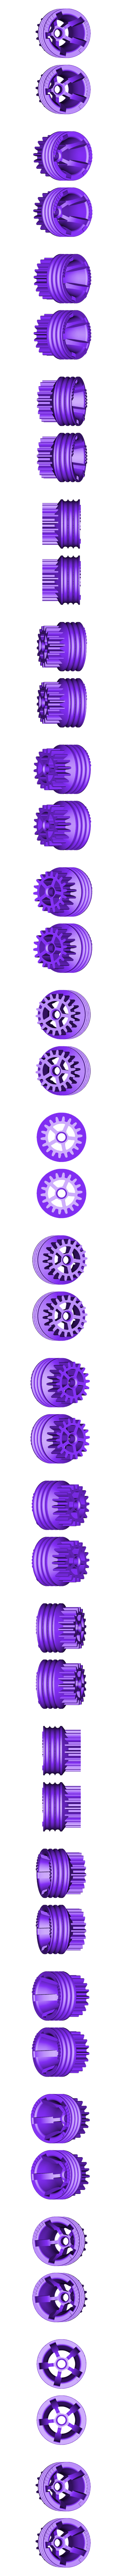 Rear Wheels Only.stl Download free STL file Dragster • 3D printable design, FerryTeacher